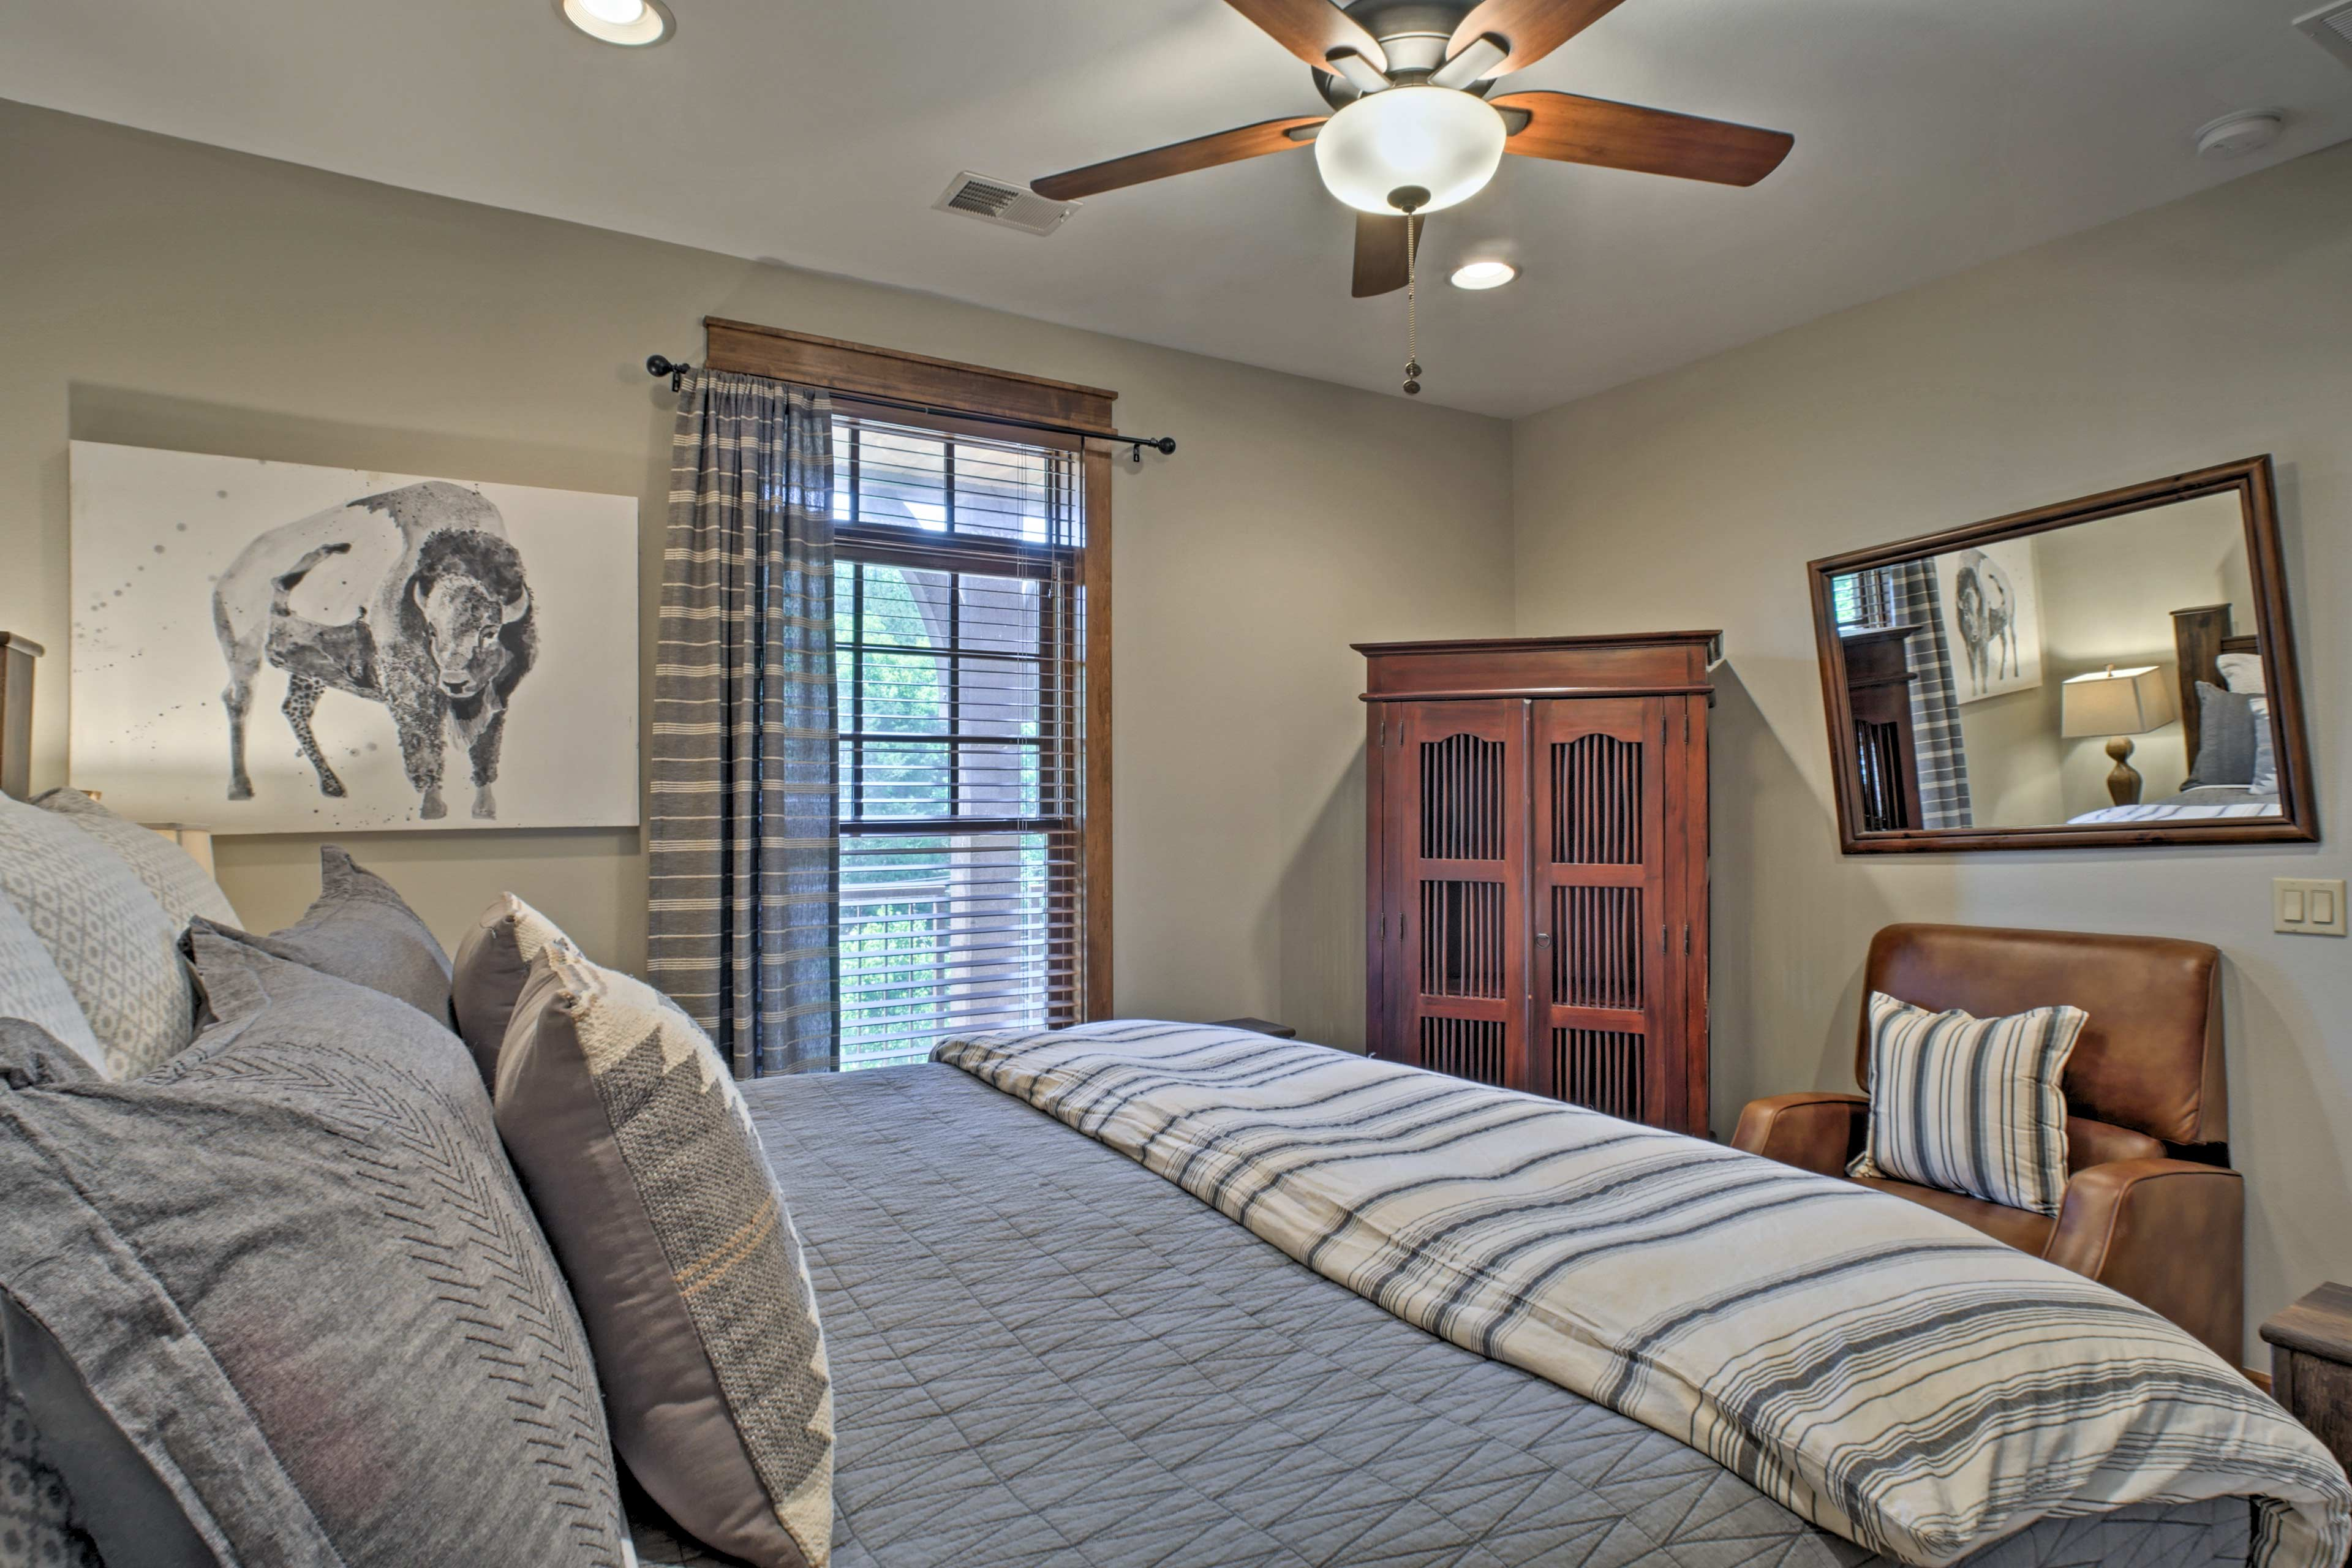 You'll feel right at home as you rest on the king bed.